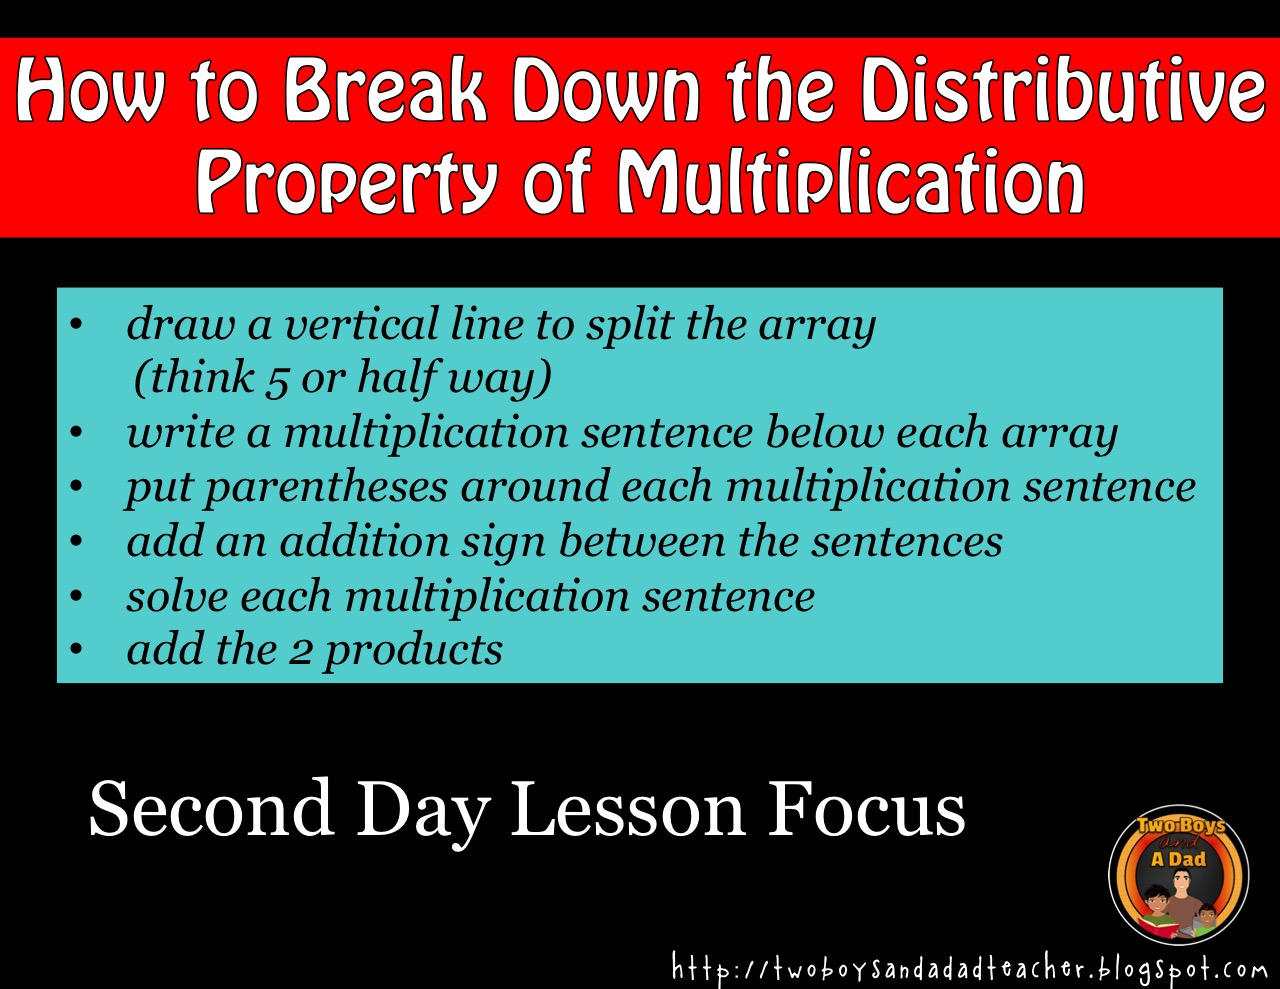 second day lesson focus